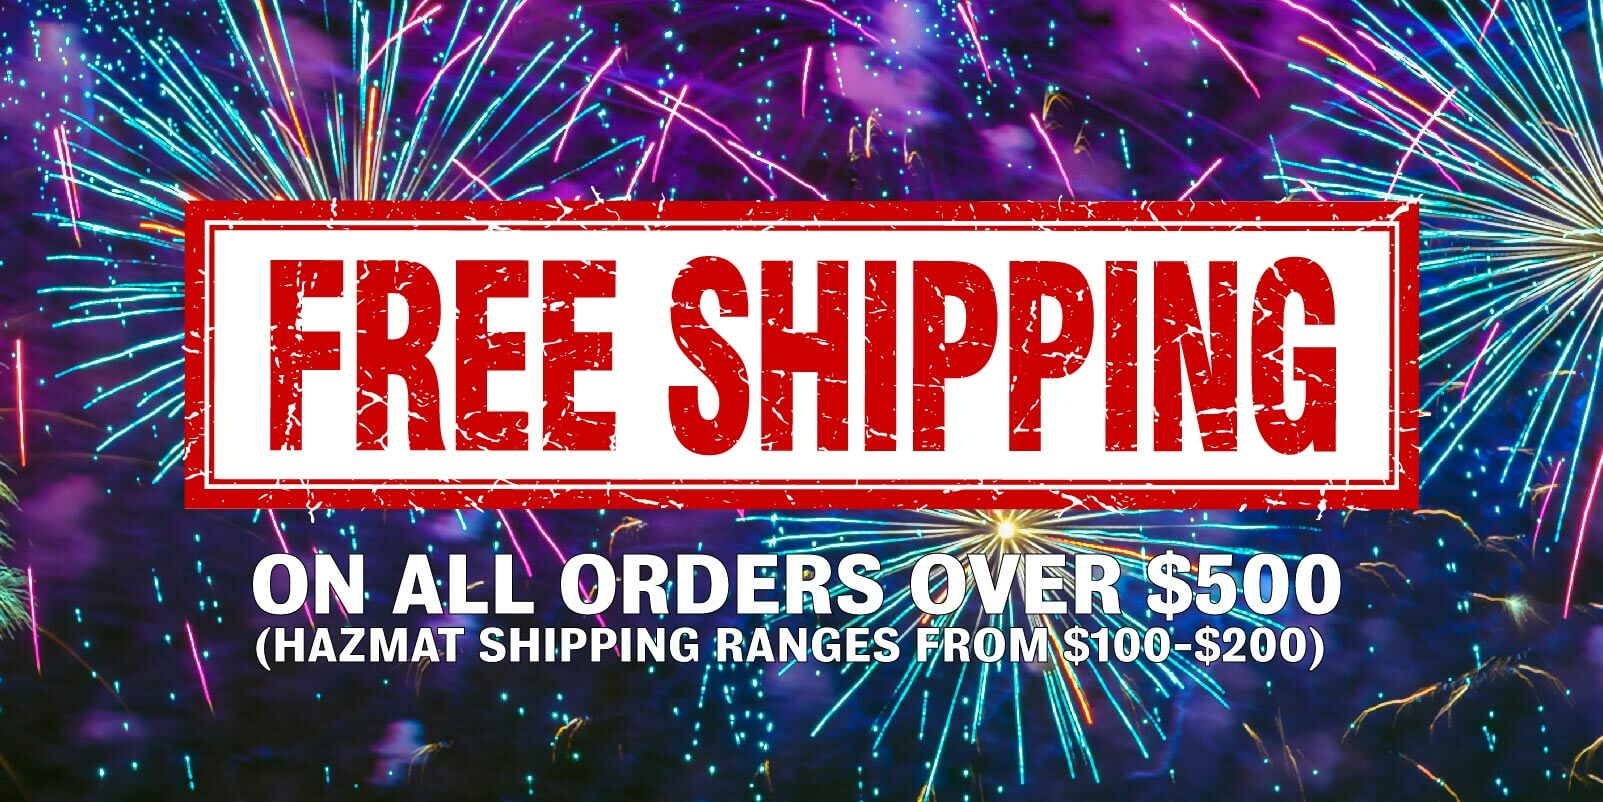 Order over $500 of fireworks online at intergalactic fireworks and receive free shipping ($100 to $200 value)